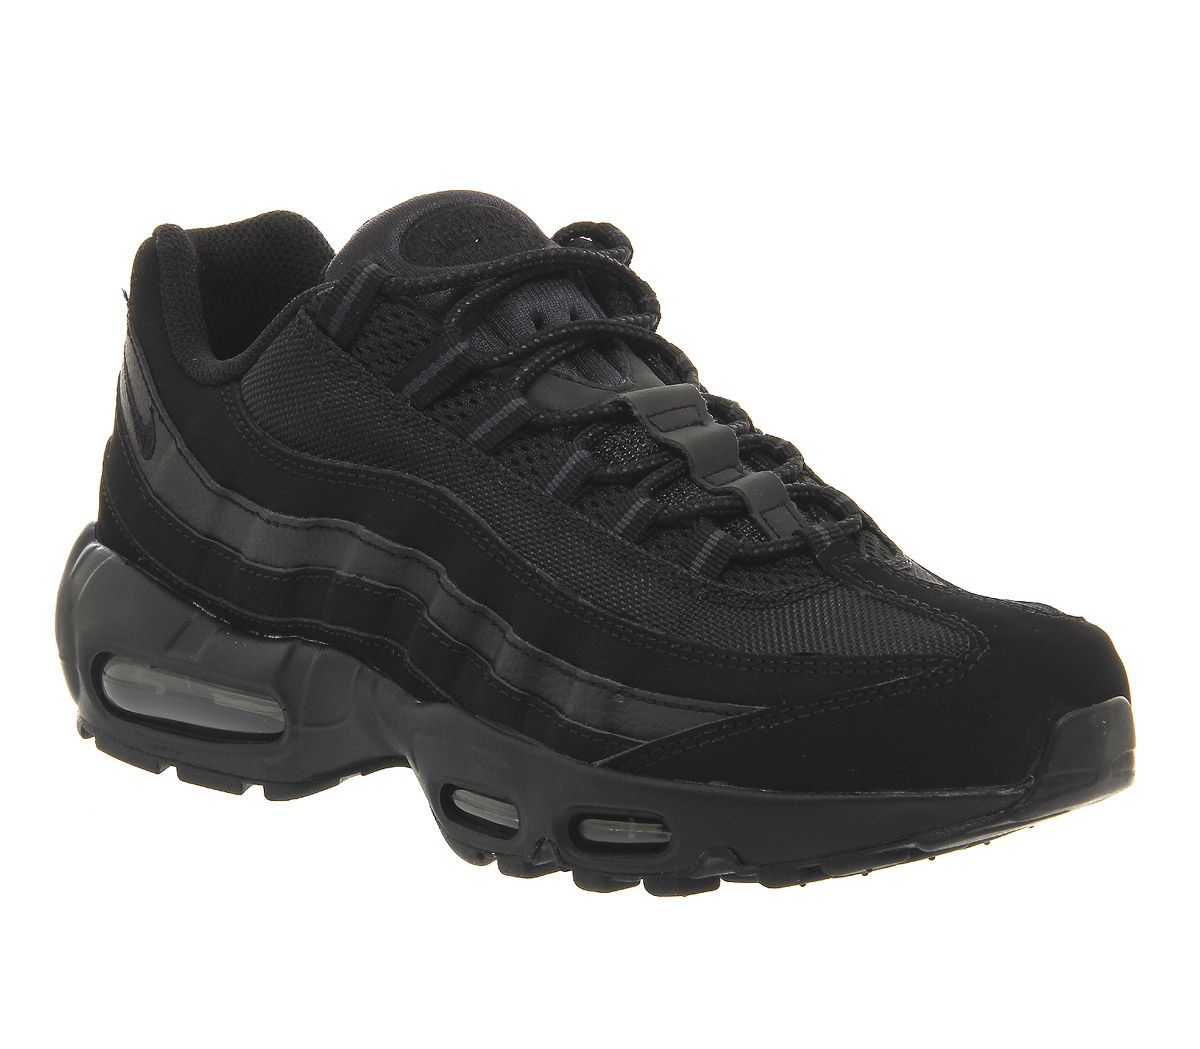 45e2e0620f Nike Air Max 95 Black Black Anthracite - His trainers